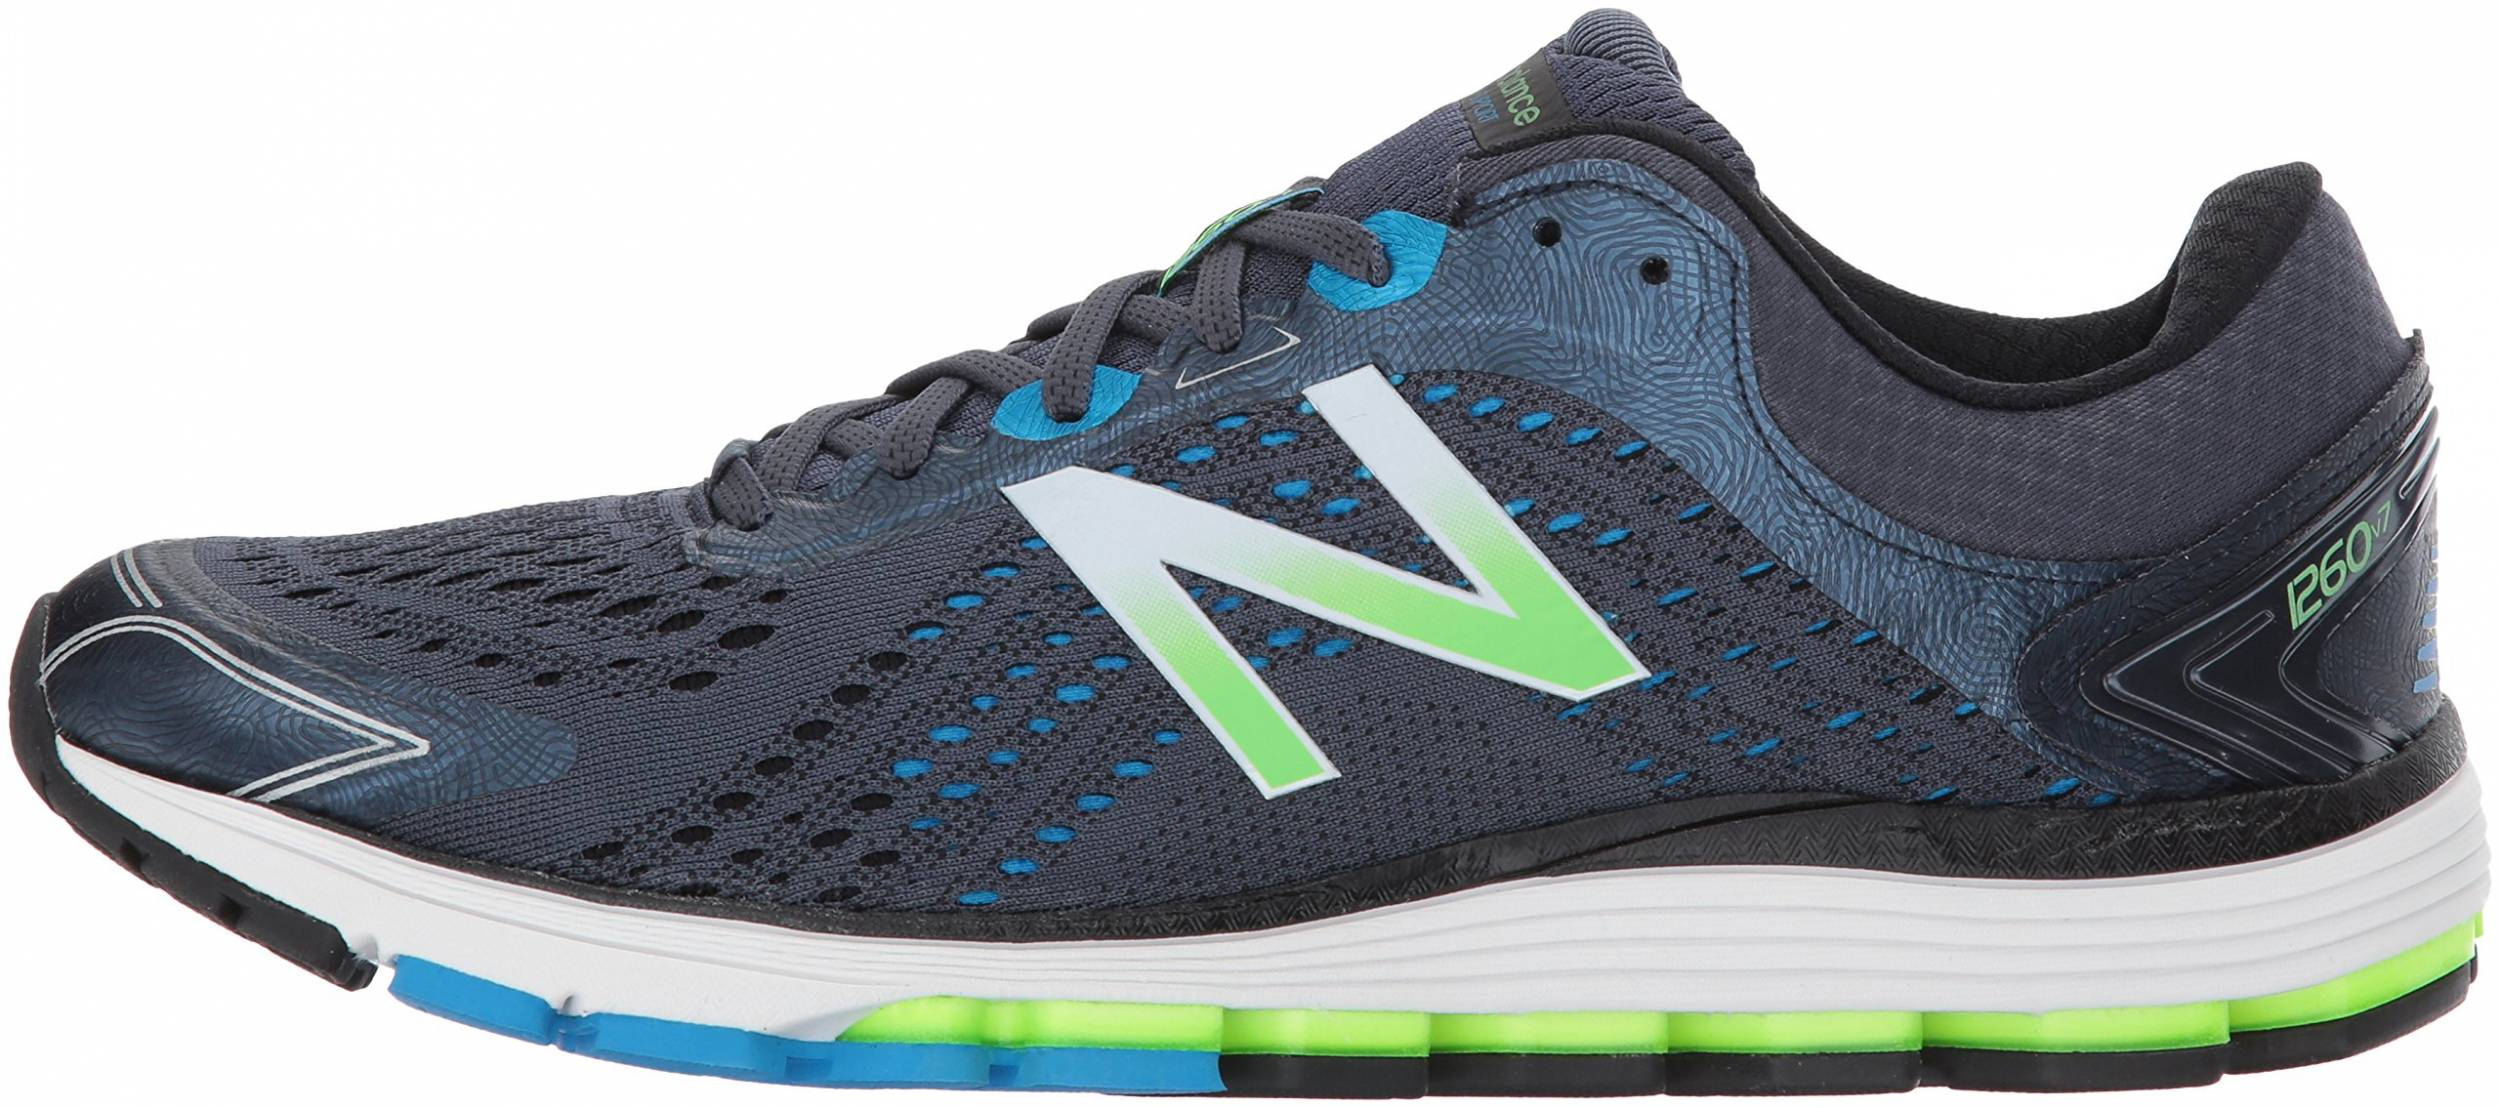 tarta amortiguar auditoría  New Balance 1260 v7 - Deals, Facts, Reviews (2021) | RunRepeat